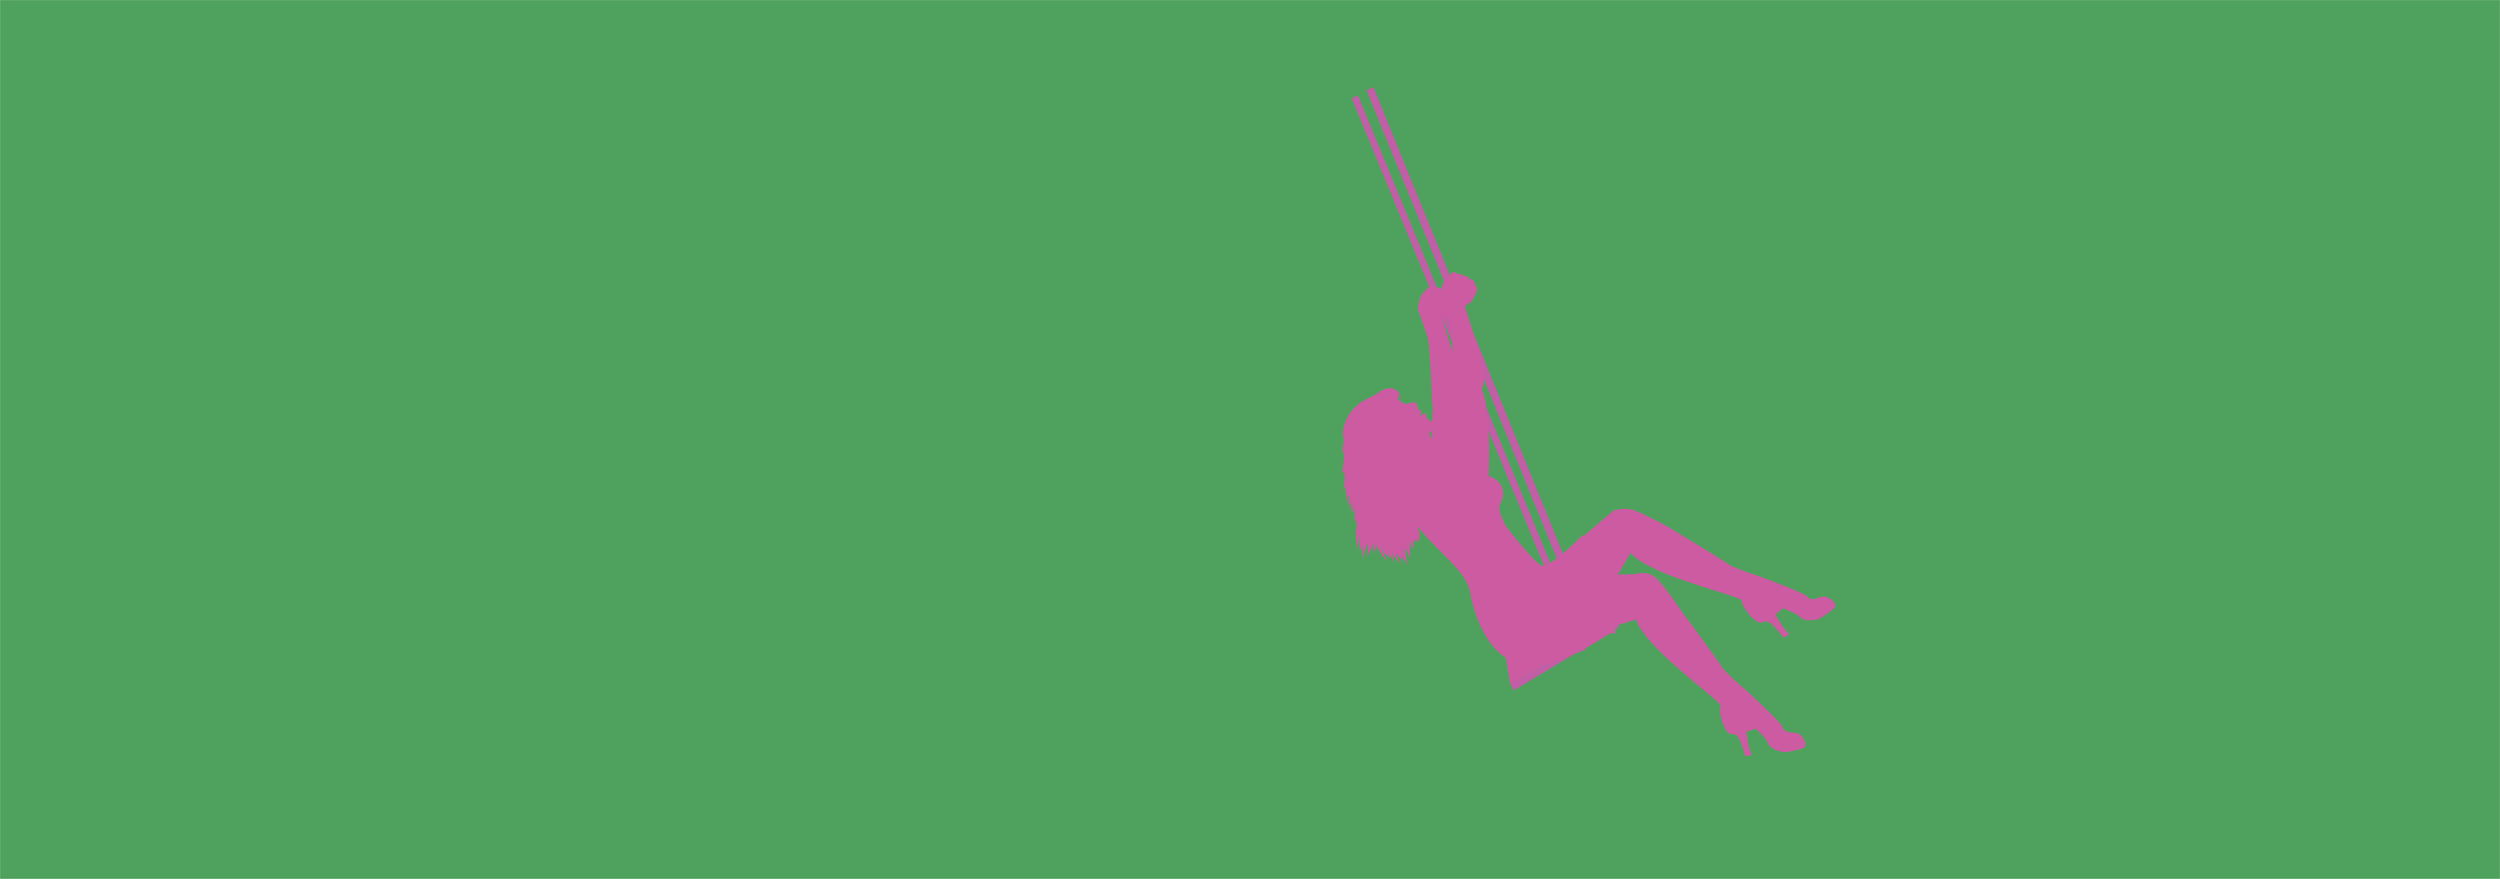 Lady in pink with green background.png